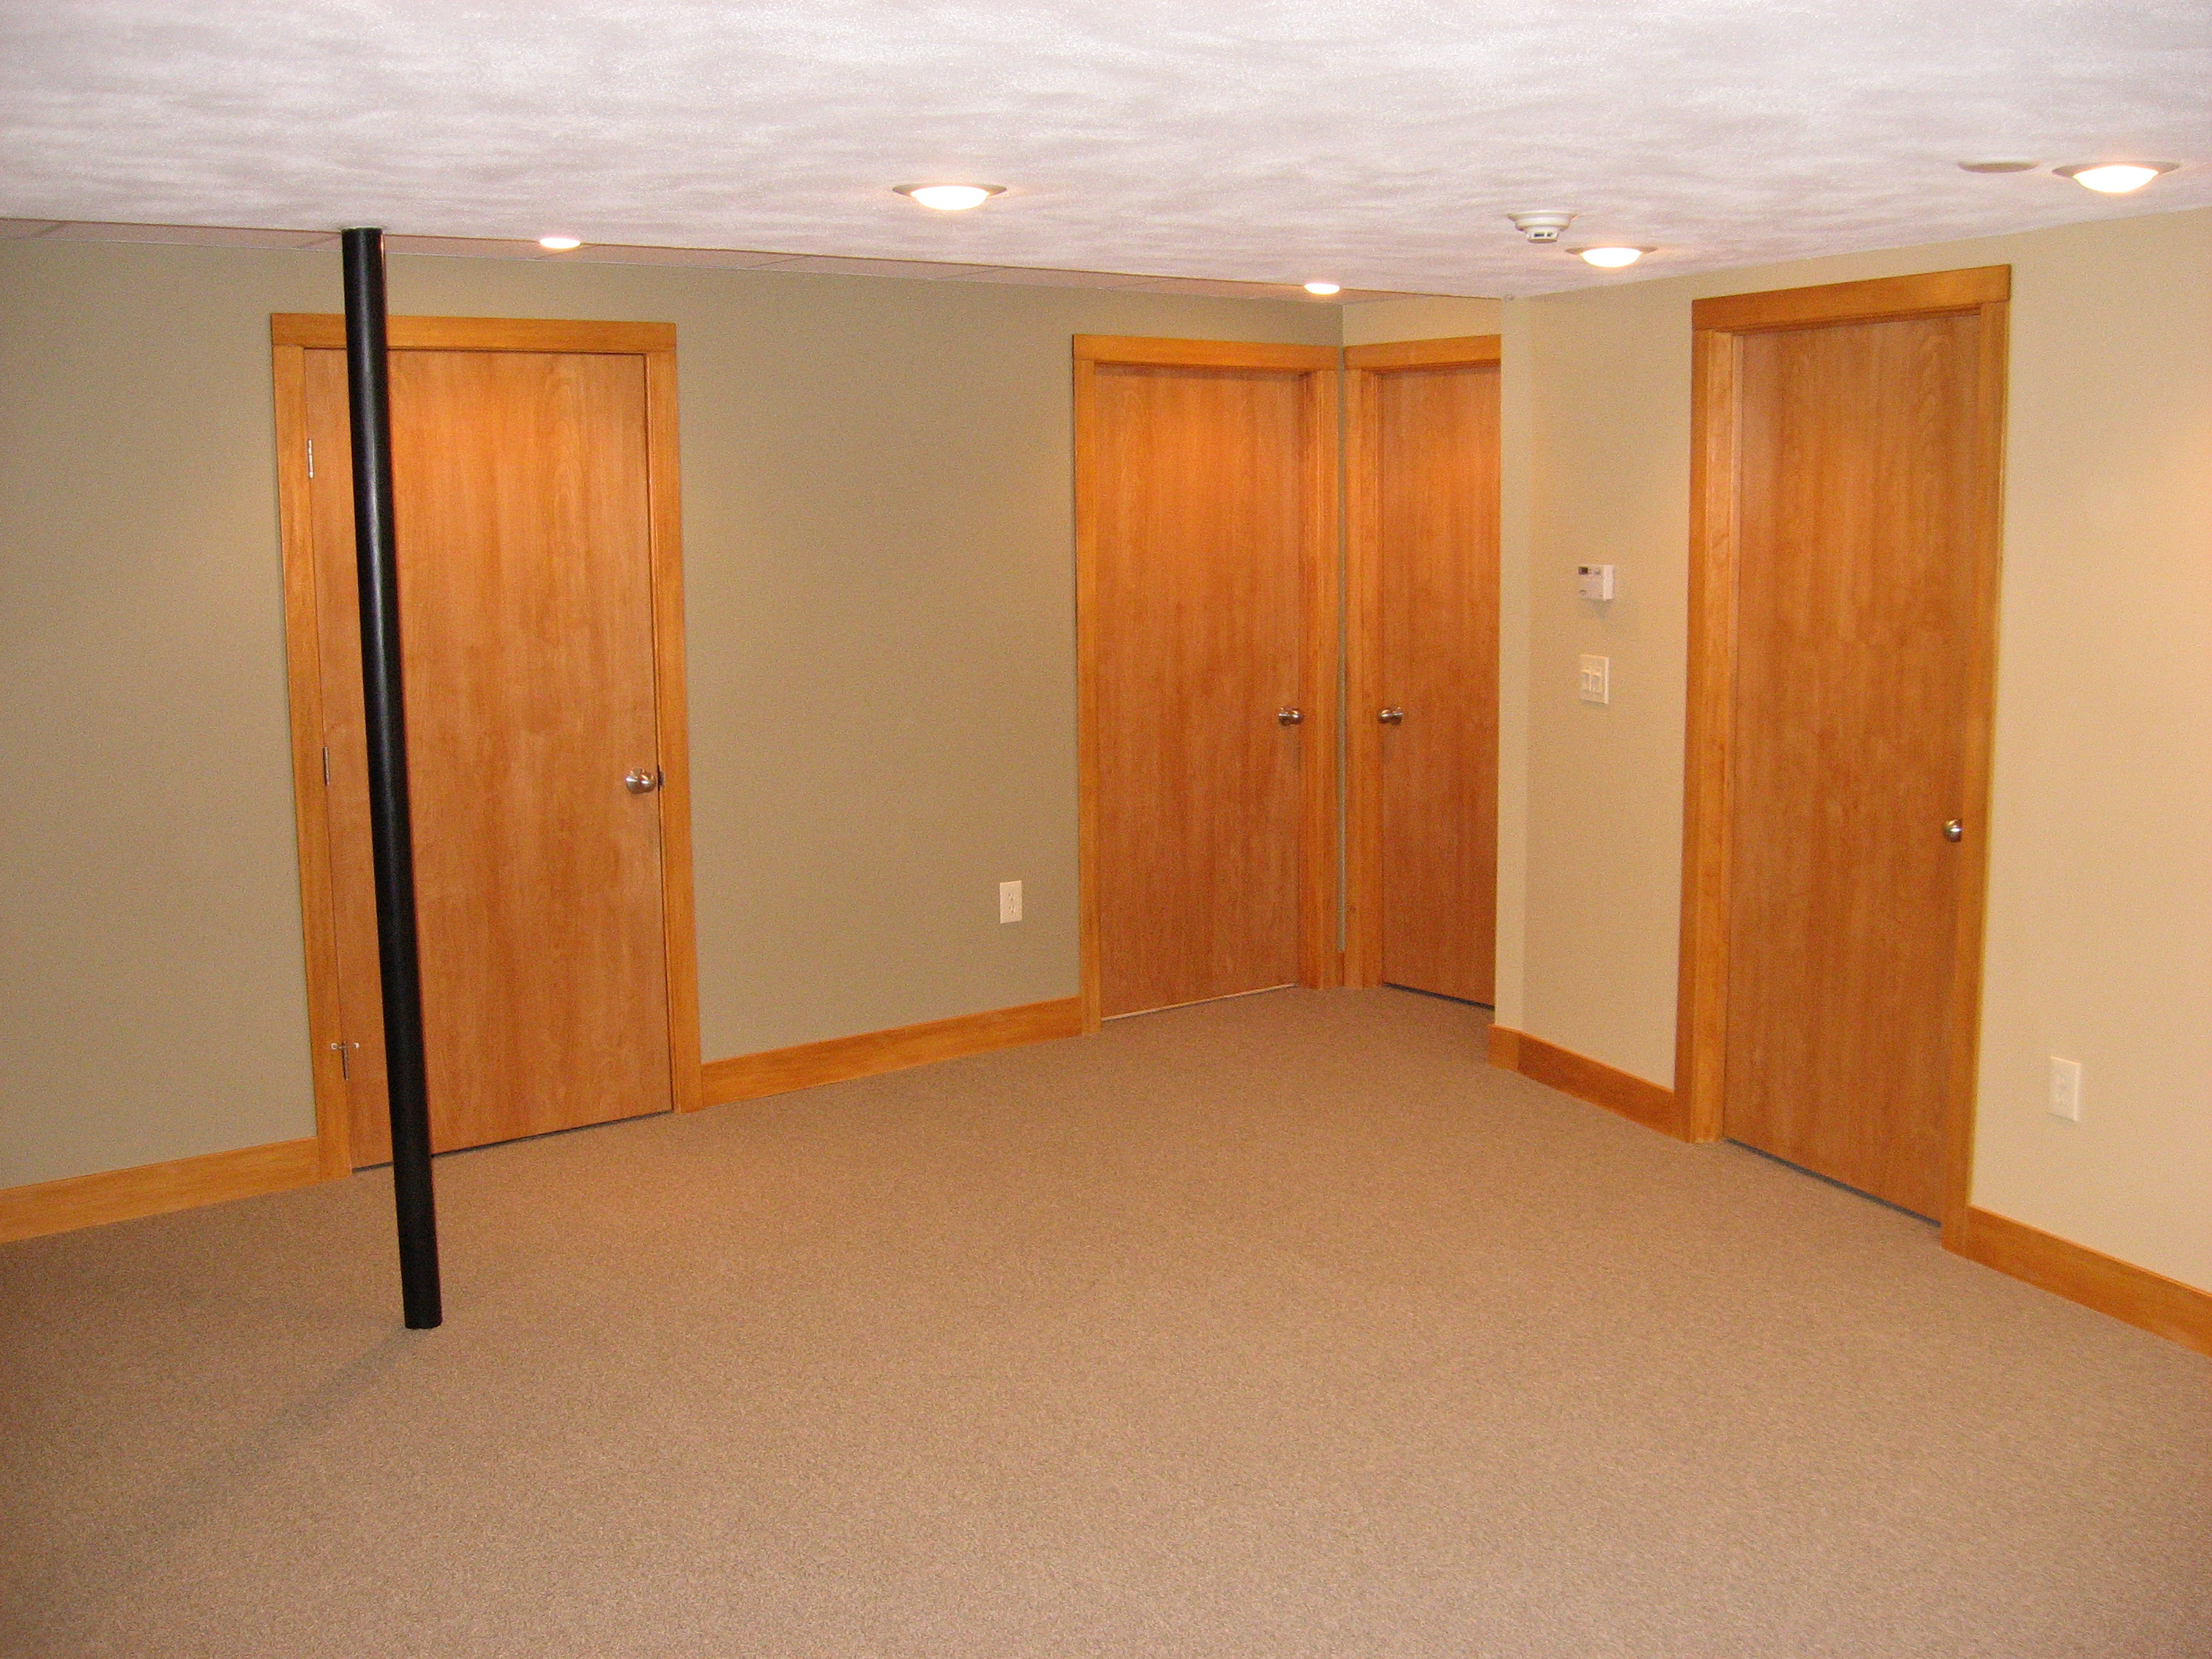 Finished basement renovation with stained birch doors, poplar baseboard and casing, and recessed lighting